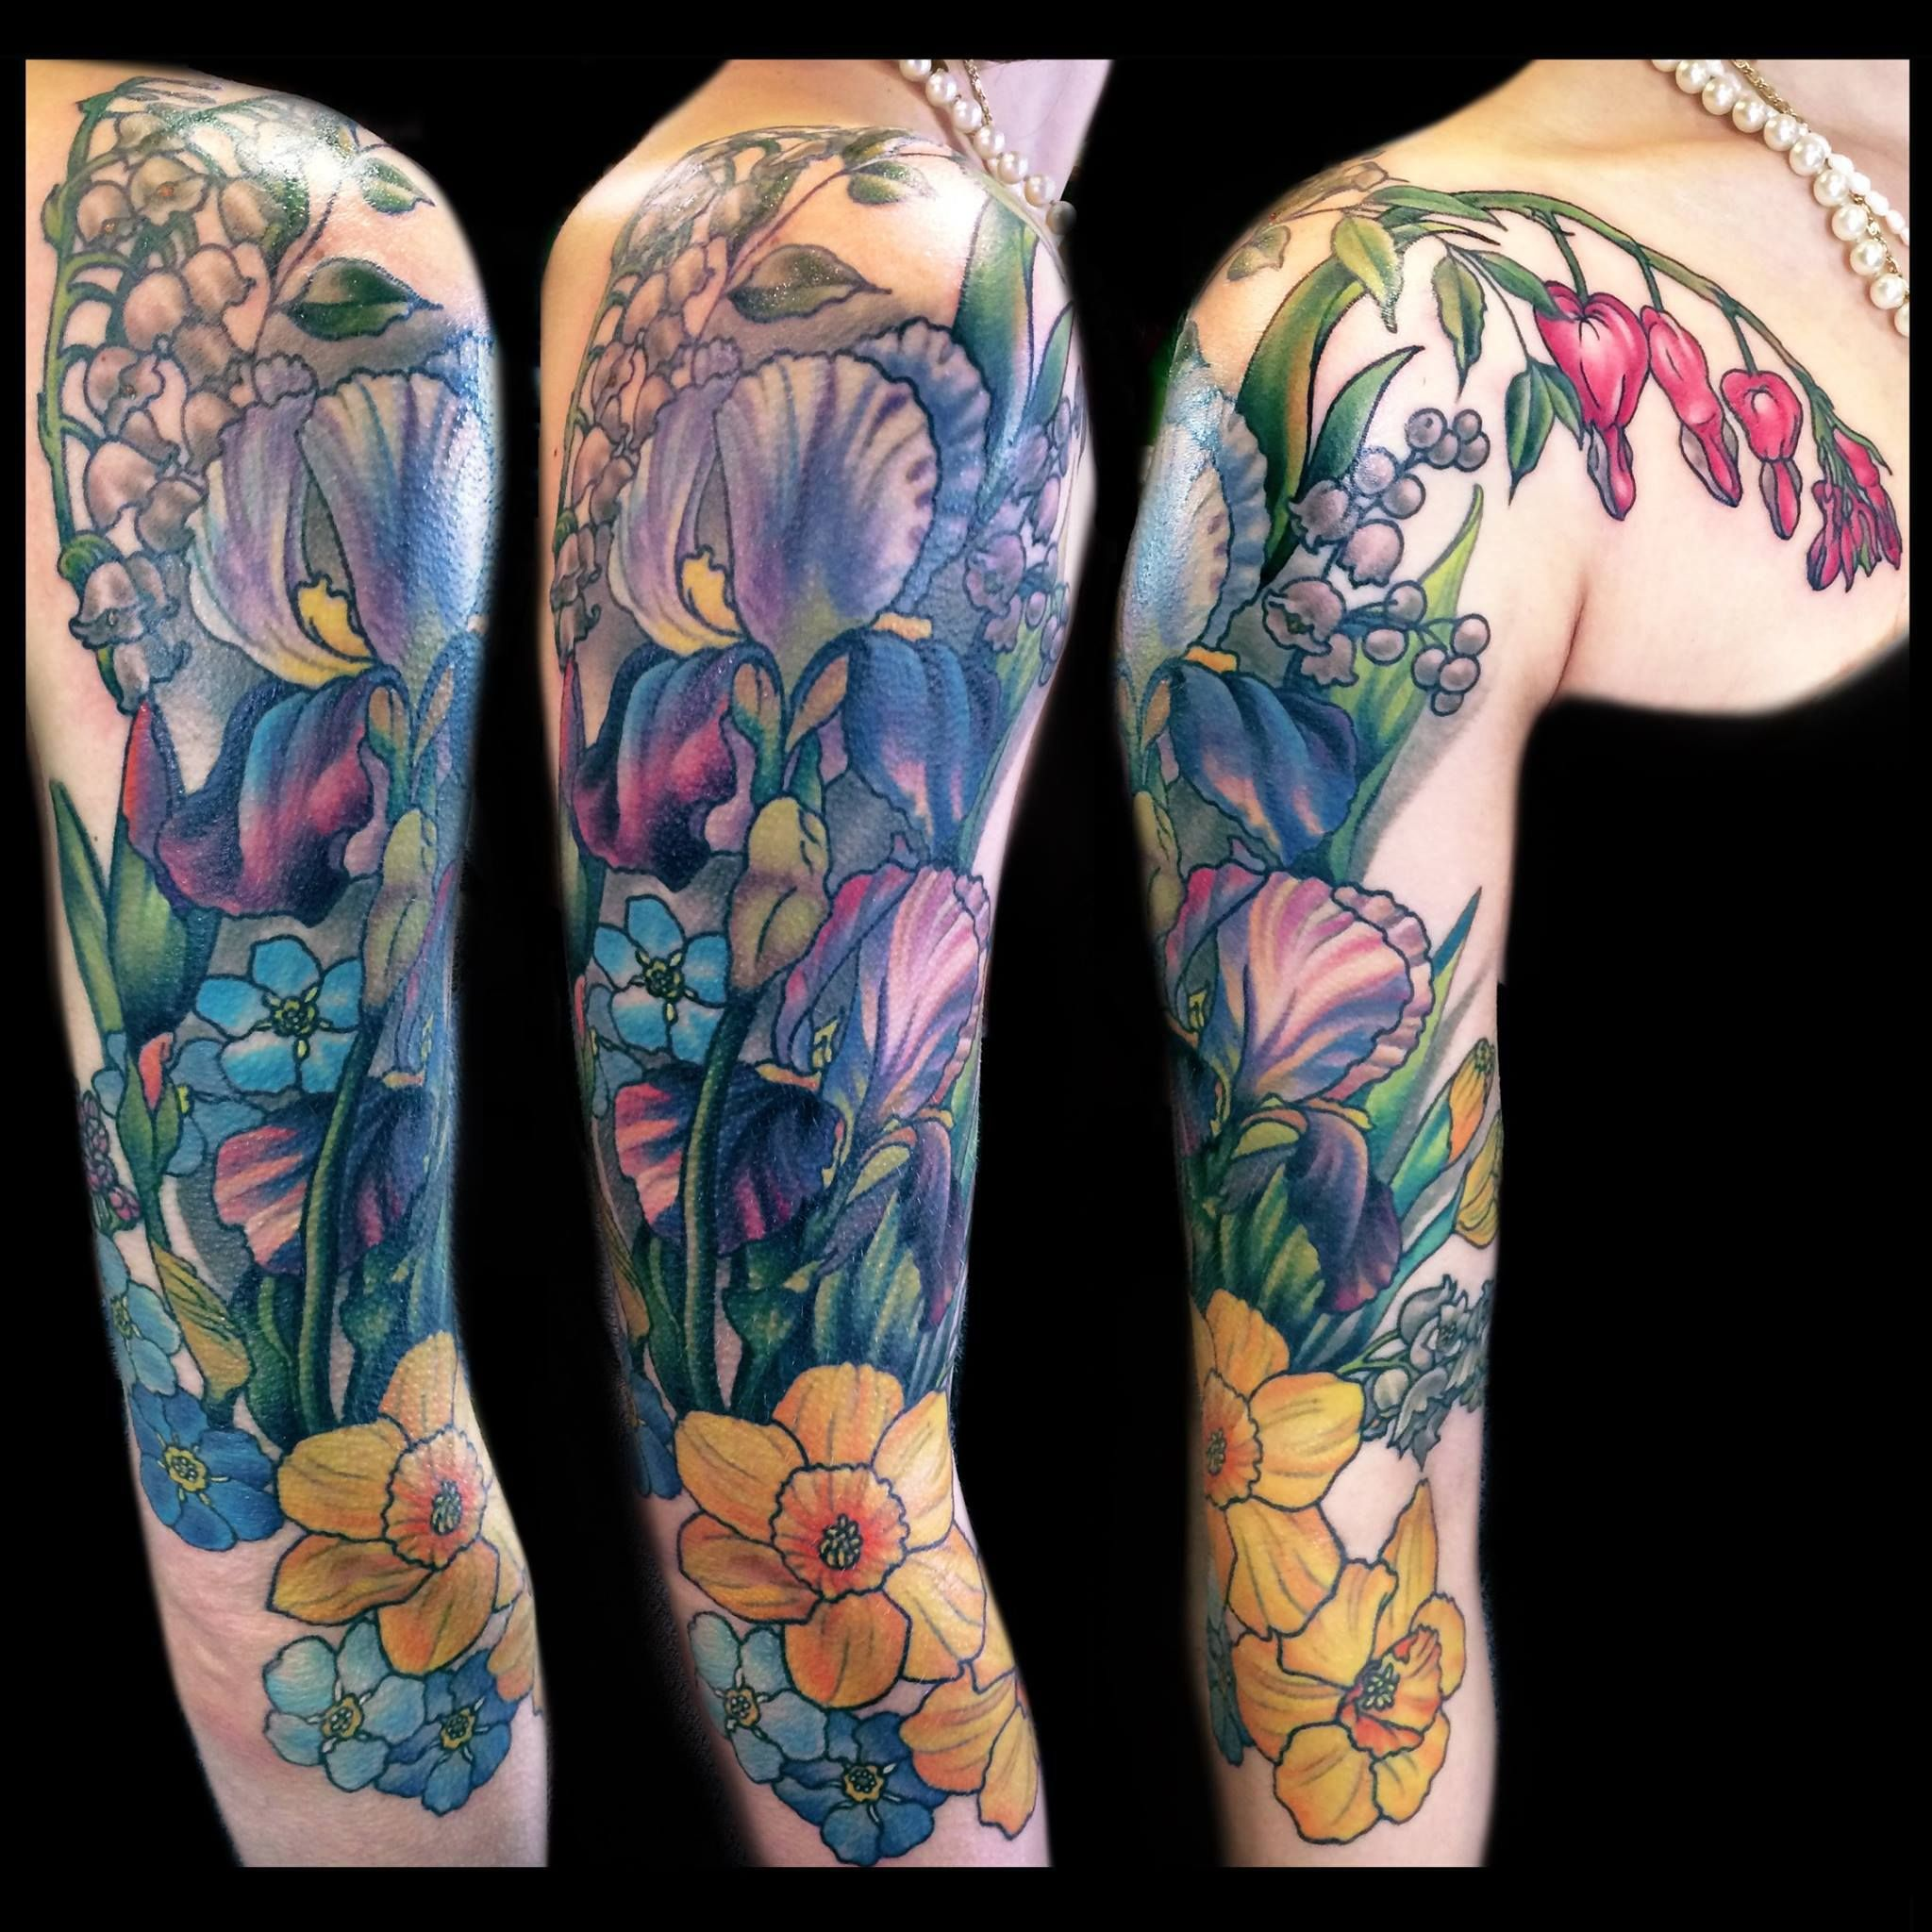 Fall fashion trends for women over 50 floral tattoo